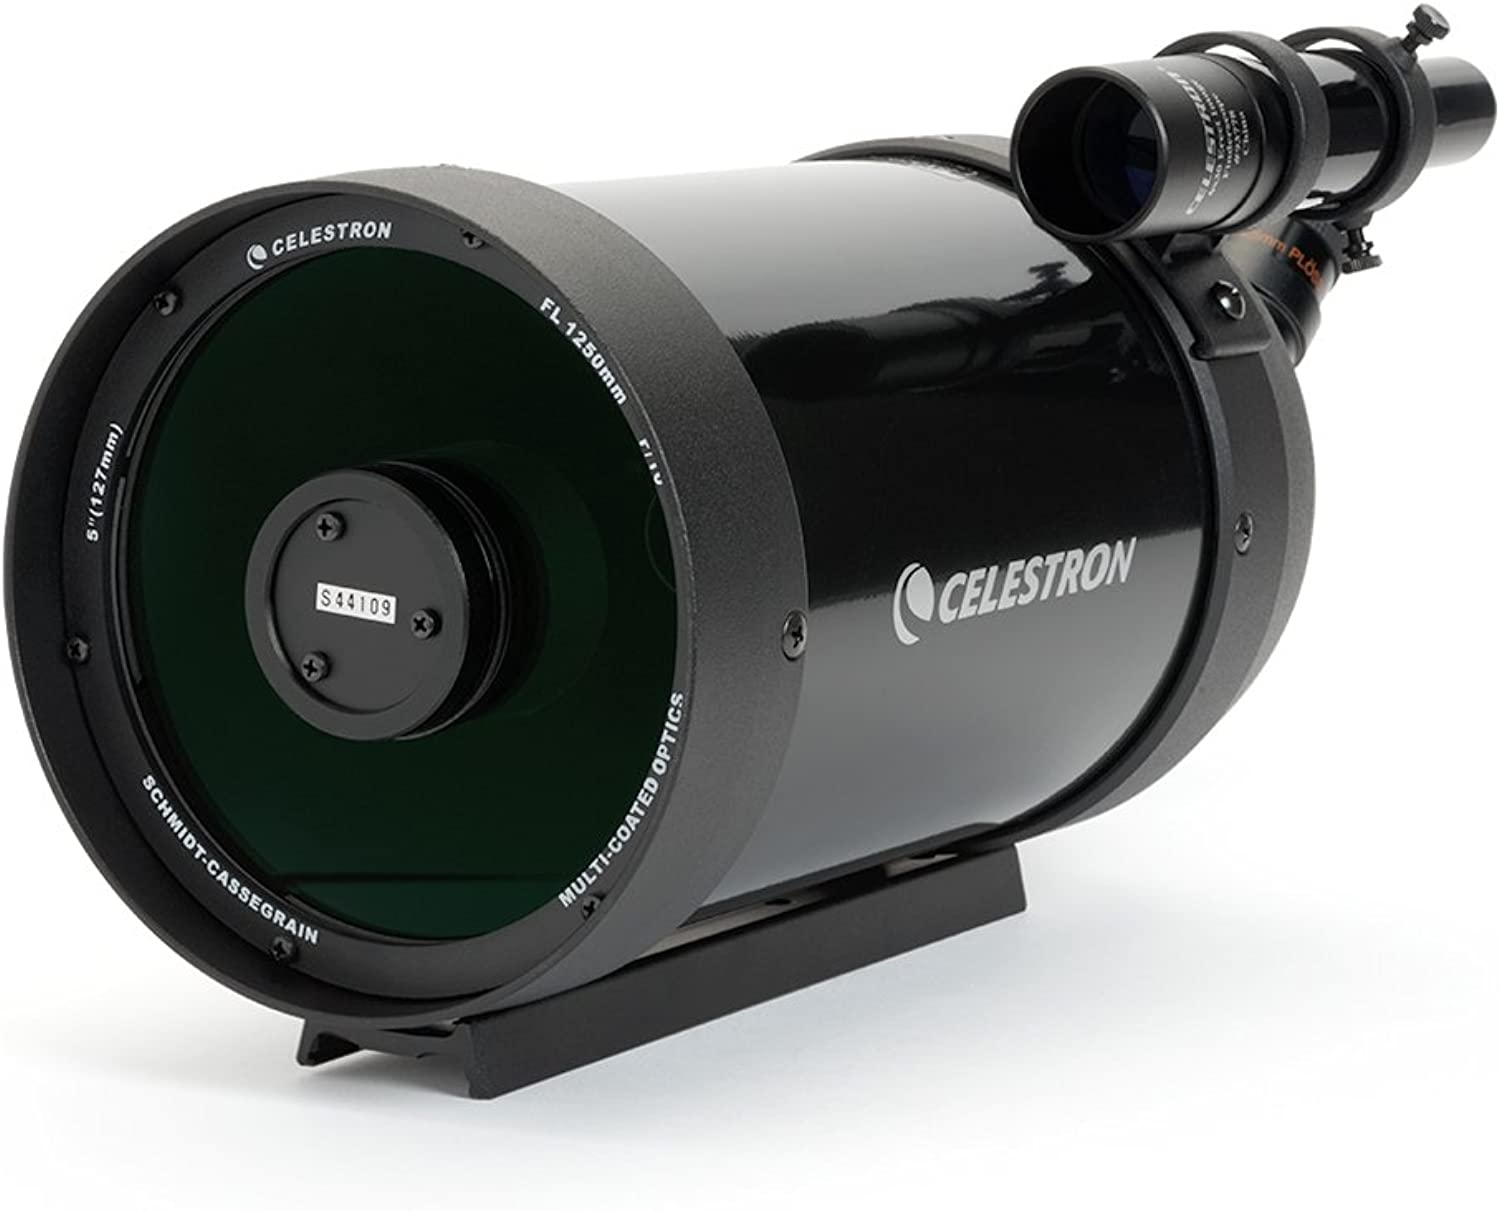 Celestron C5 Spotting Scope, 52291